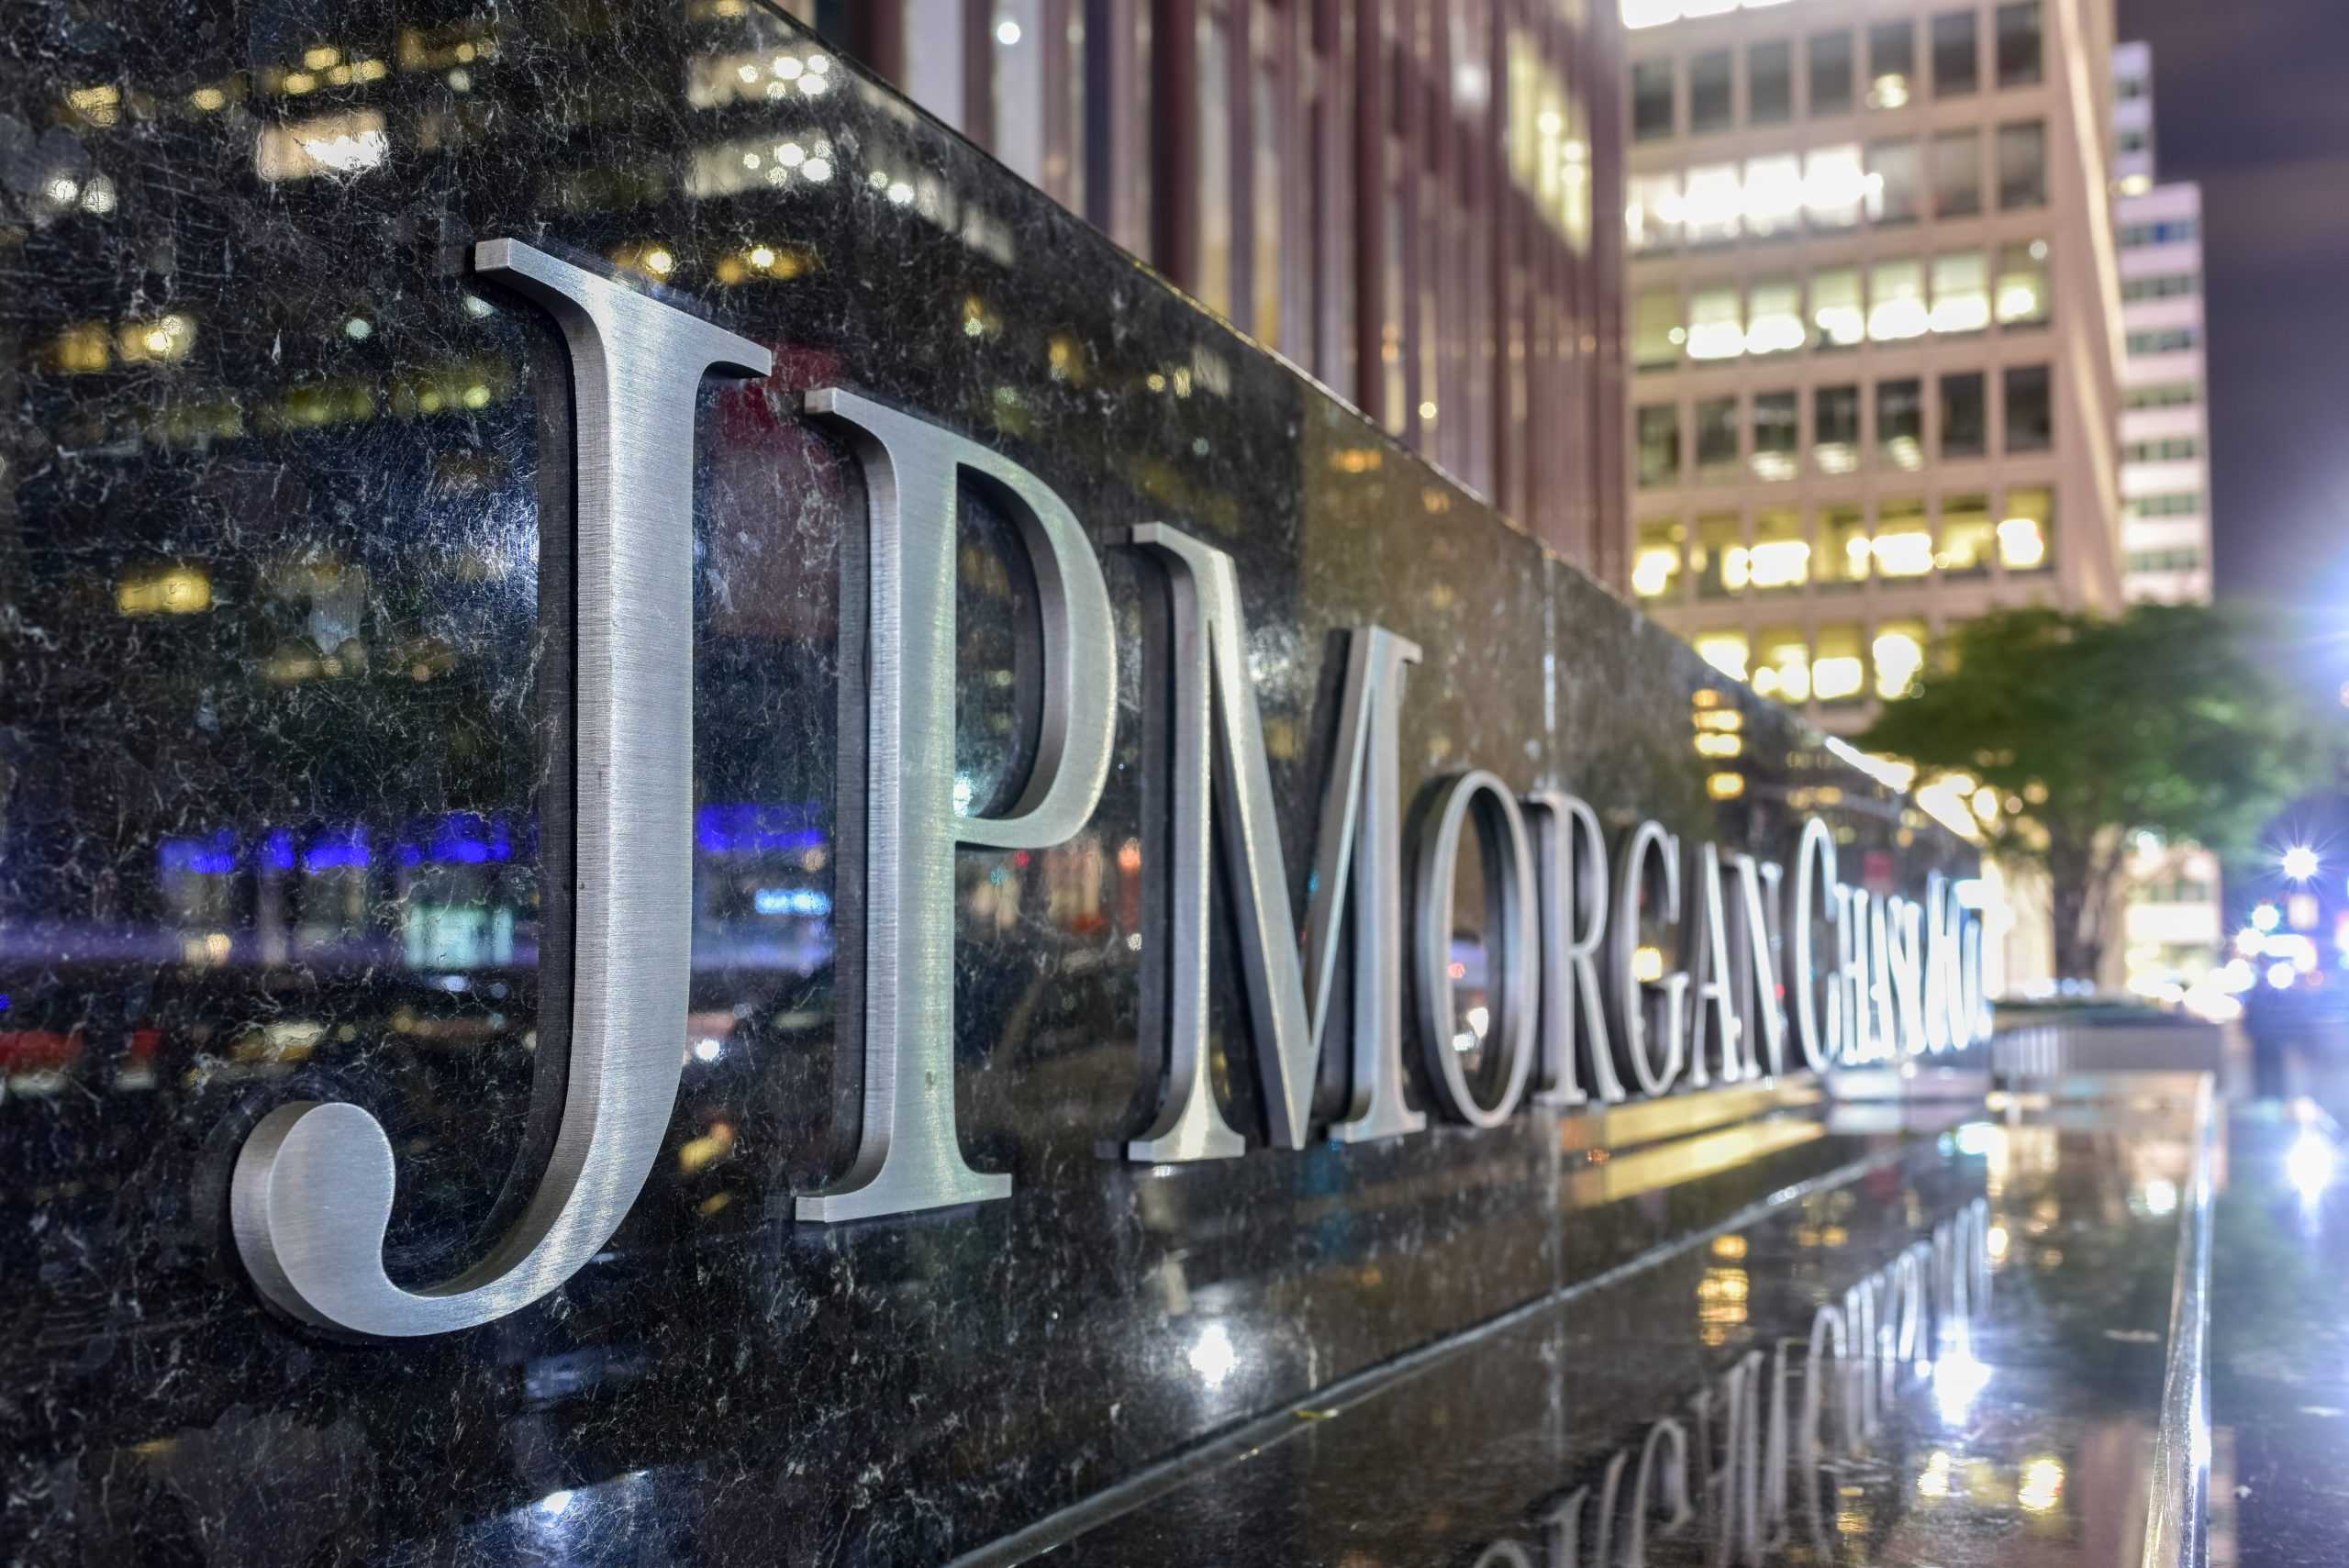 bitcoin jp morgan crypto microstrategy